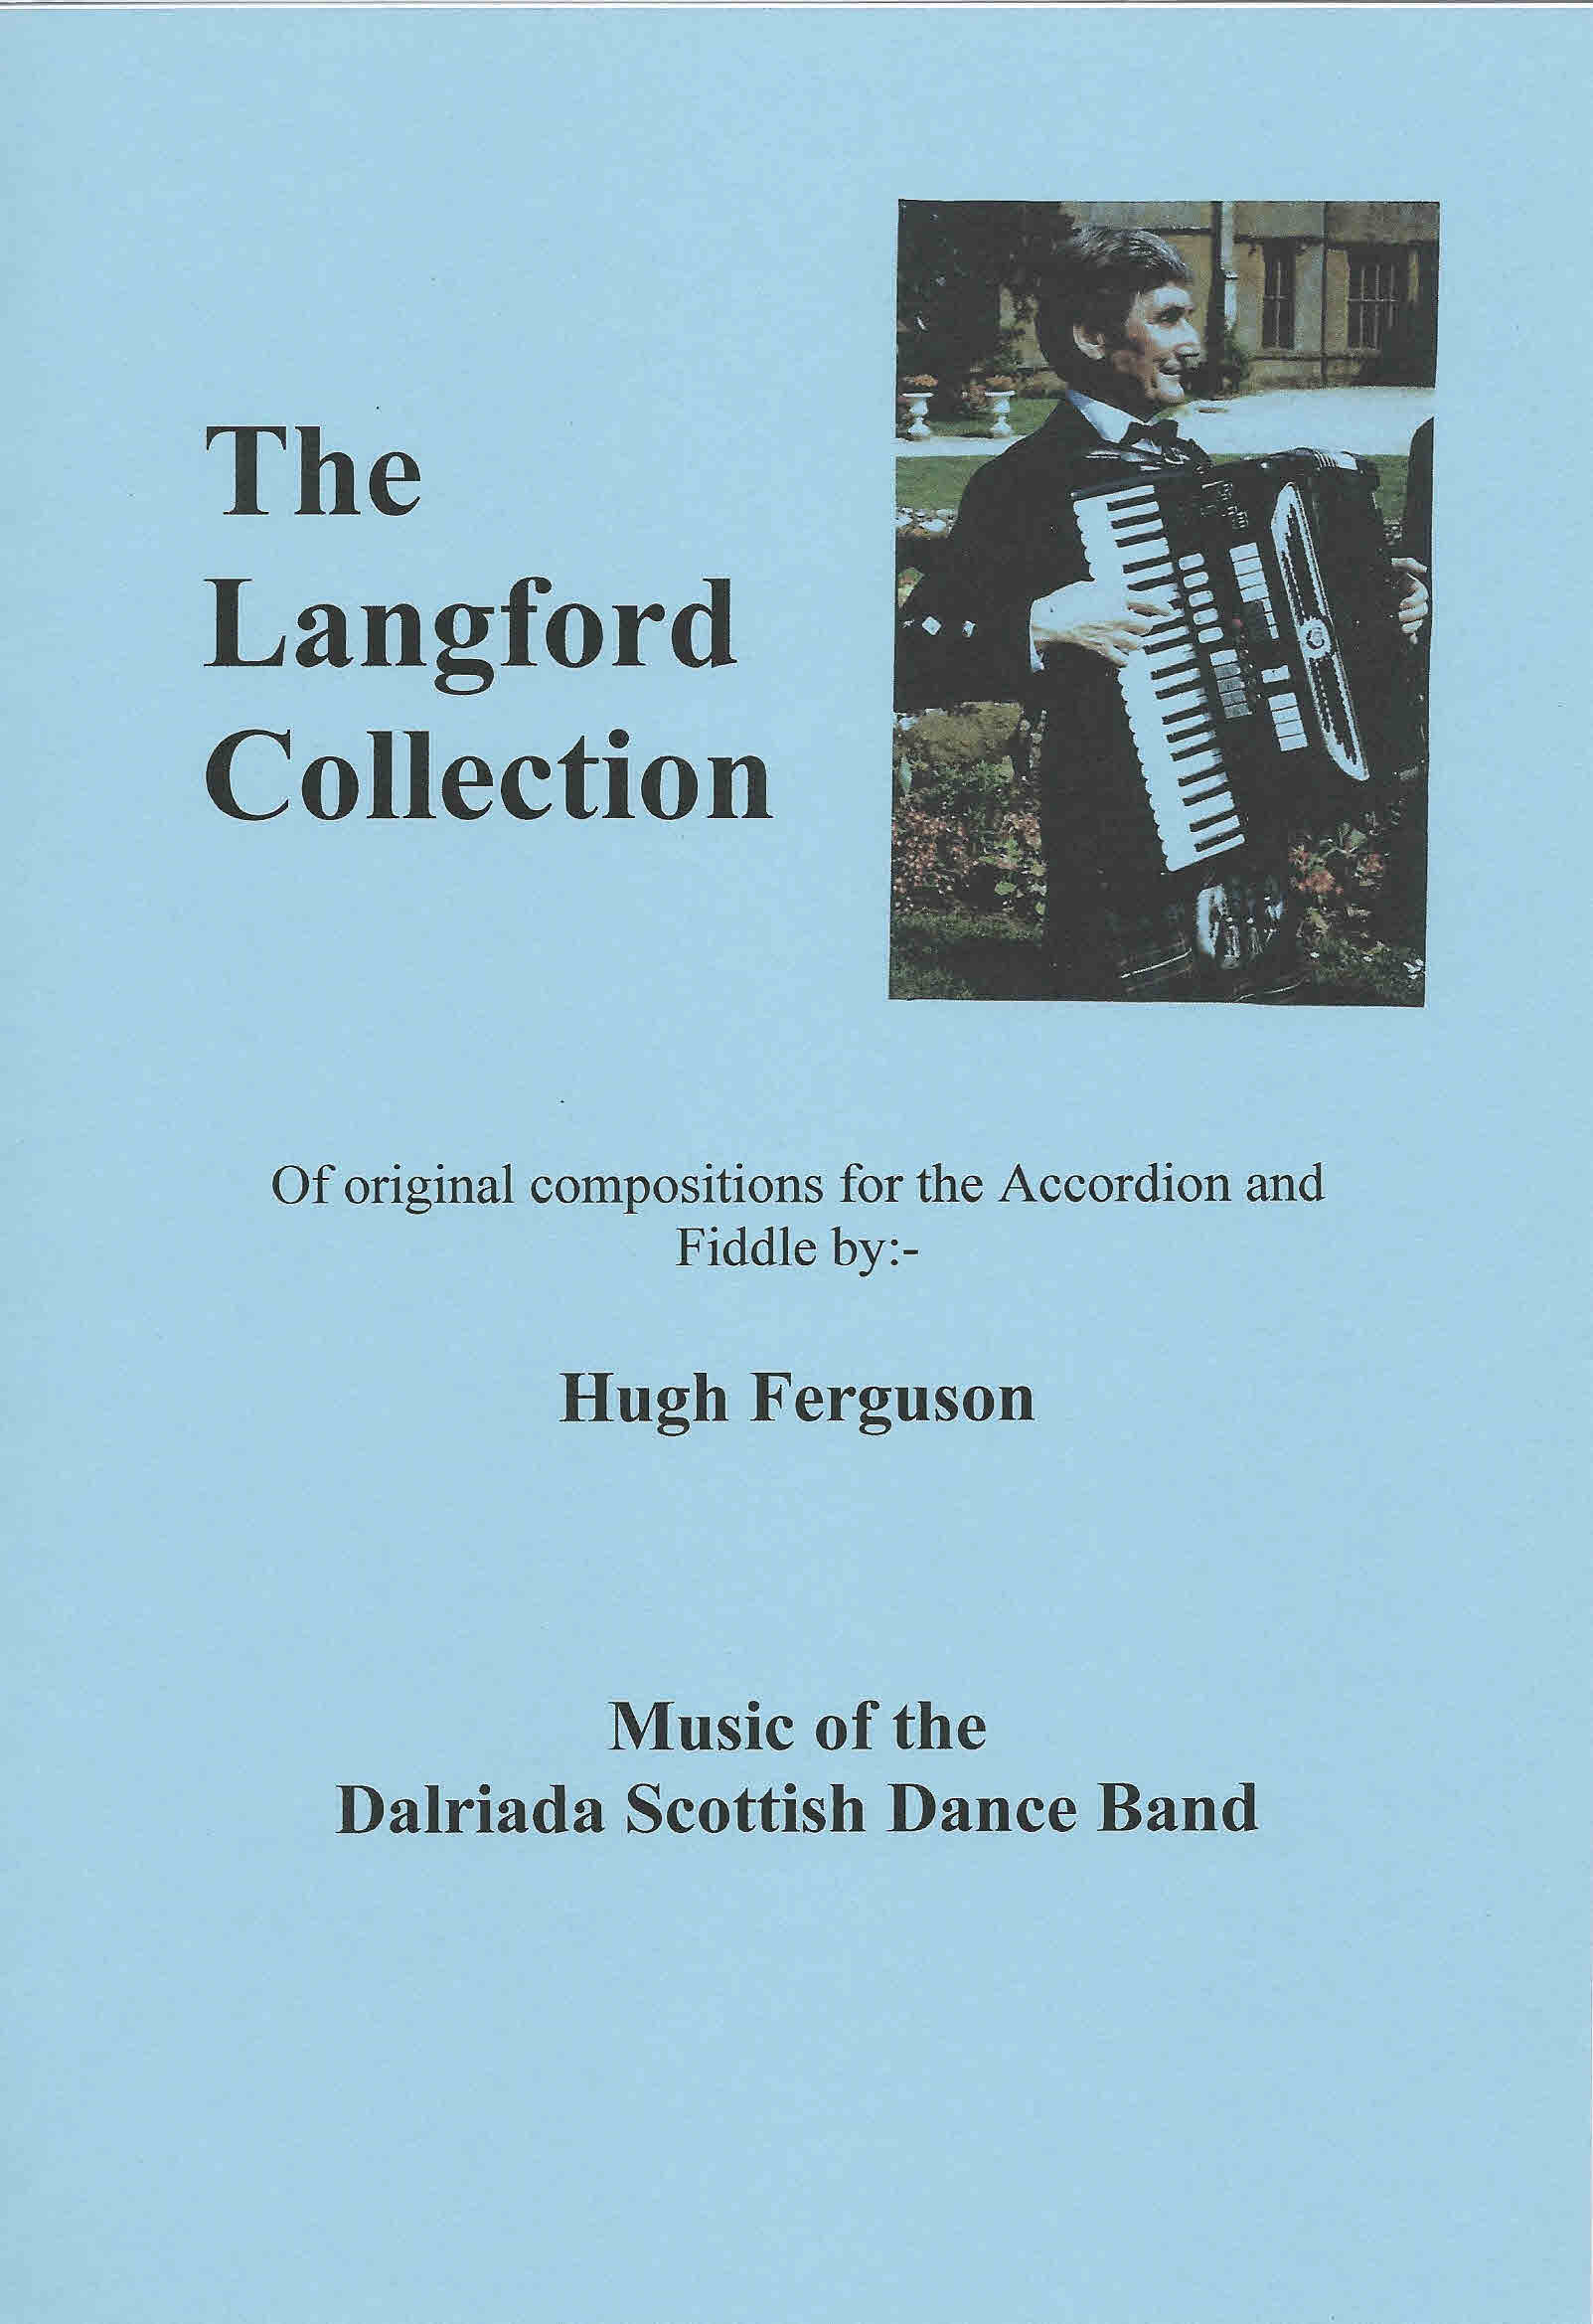 The Langford Collection